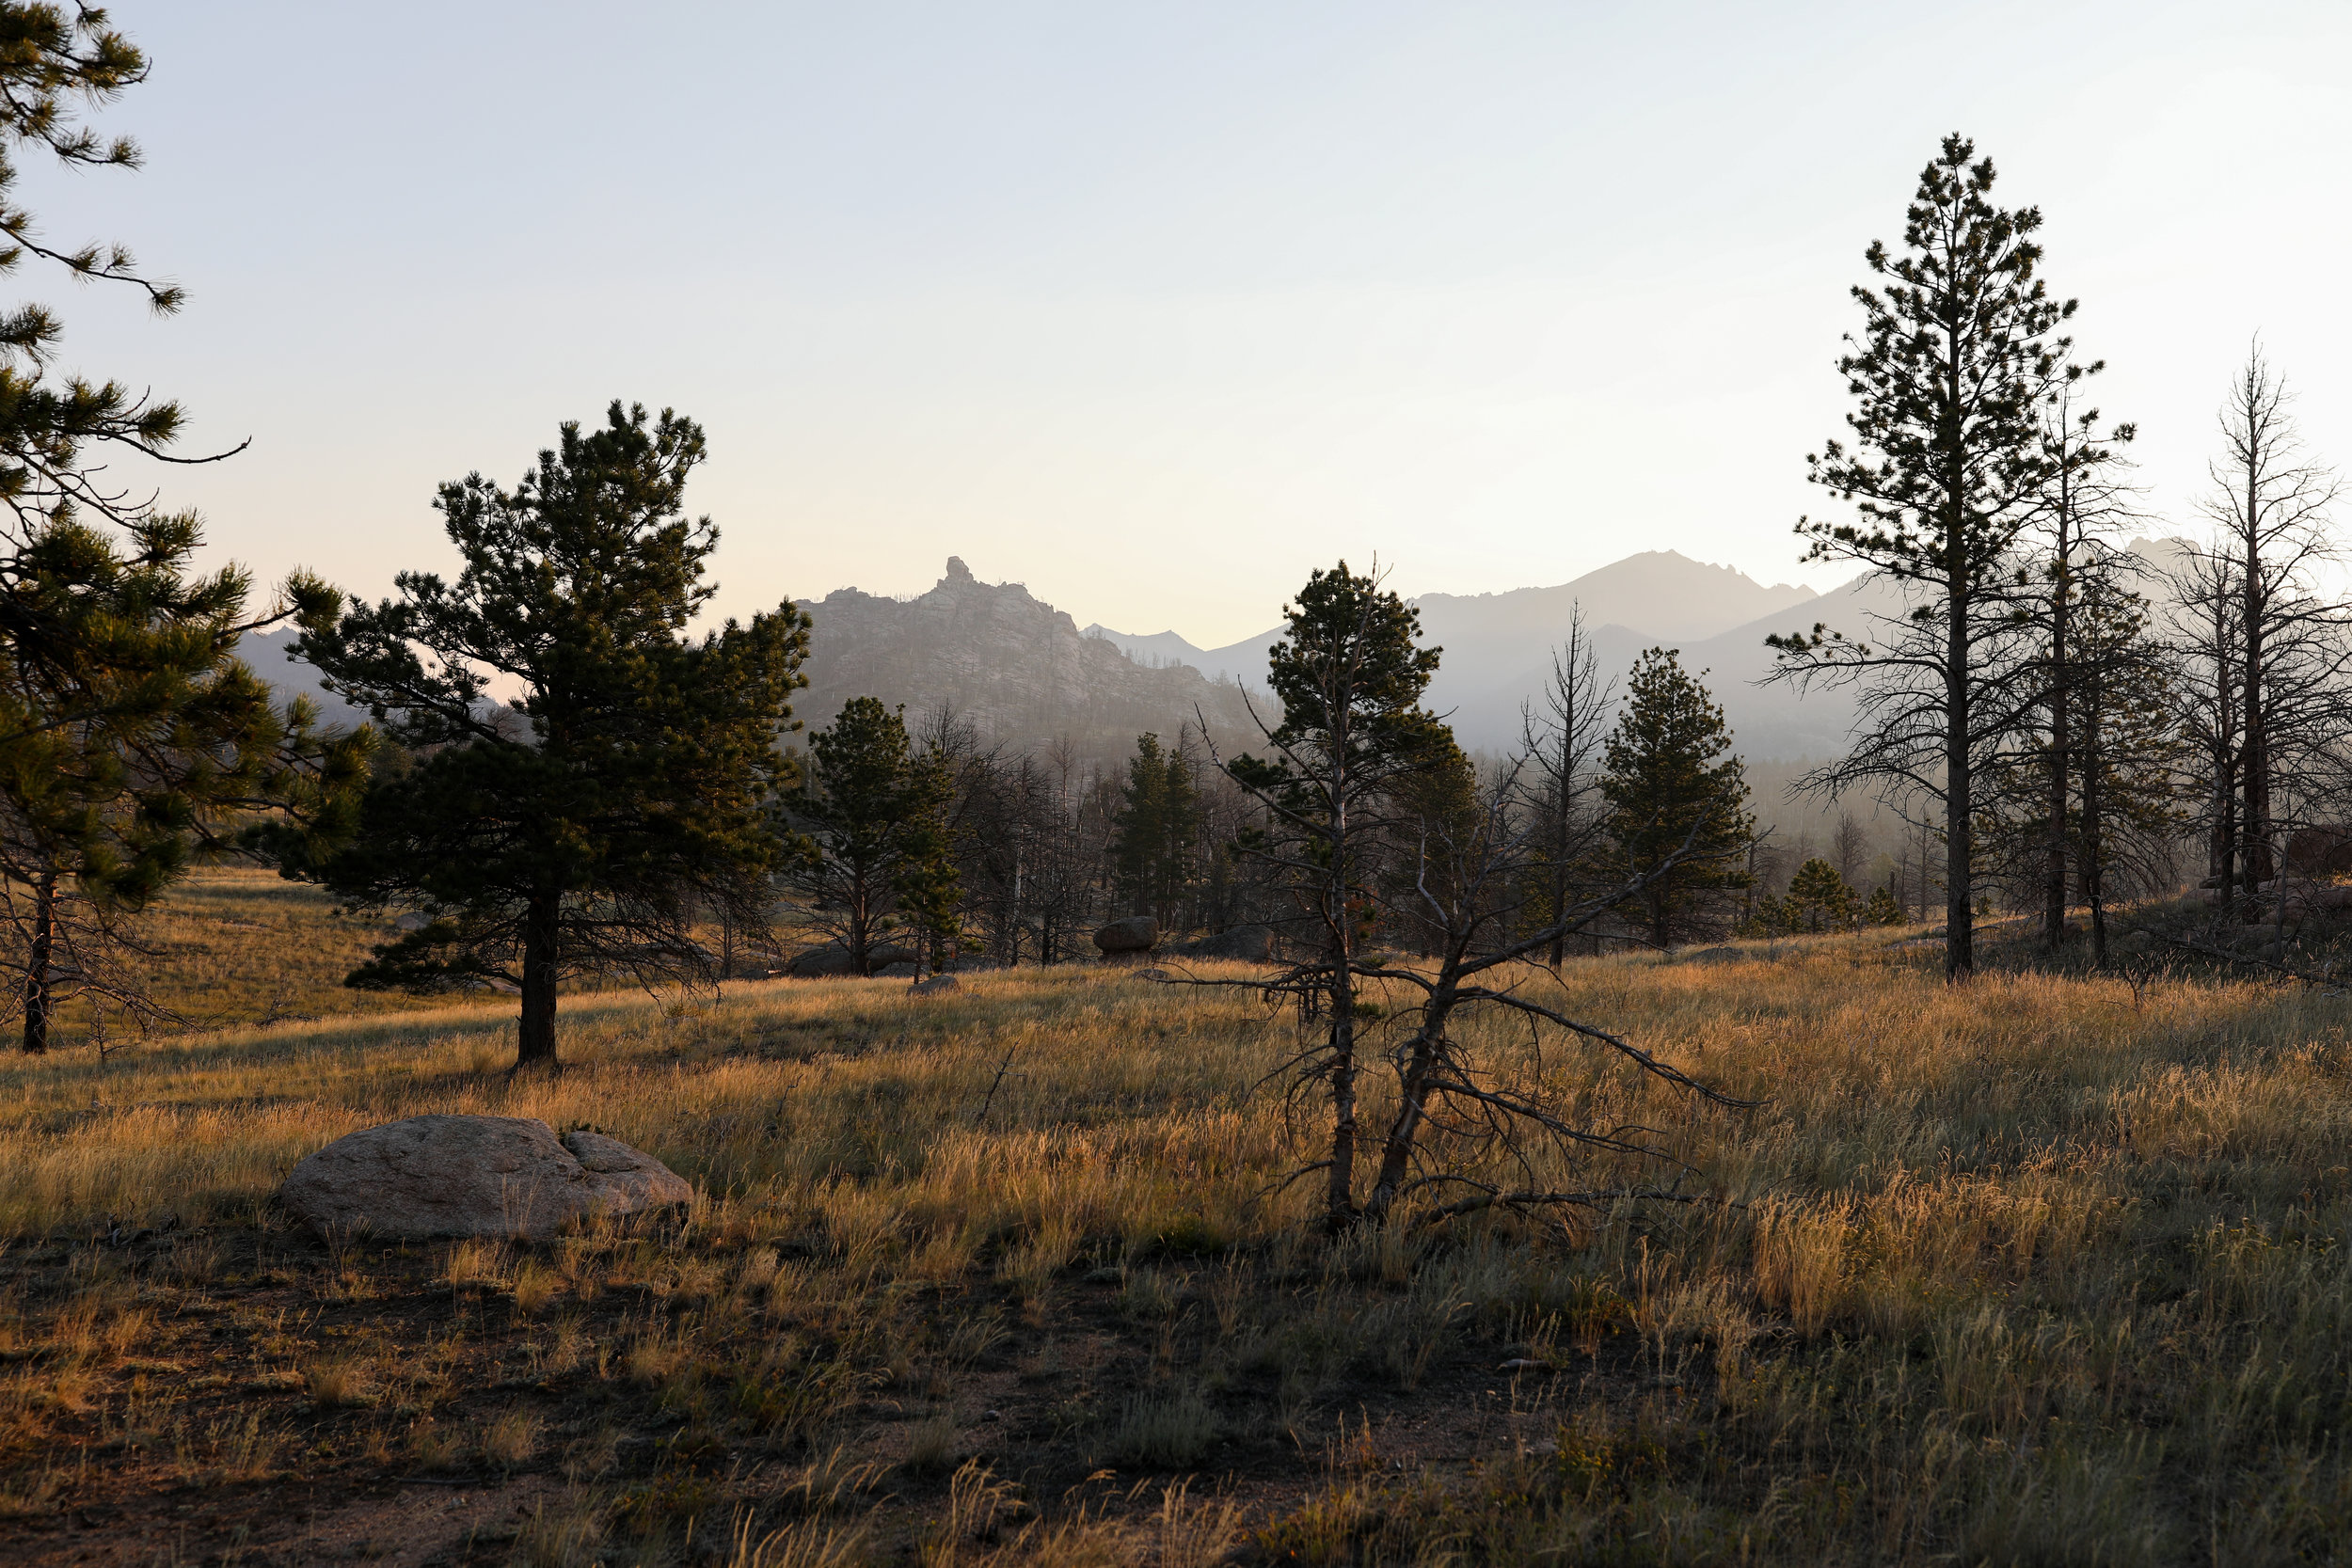 Medicine Bow National Forest, Wyoming